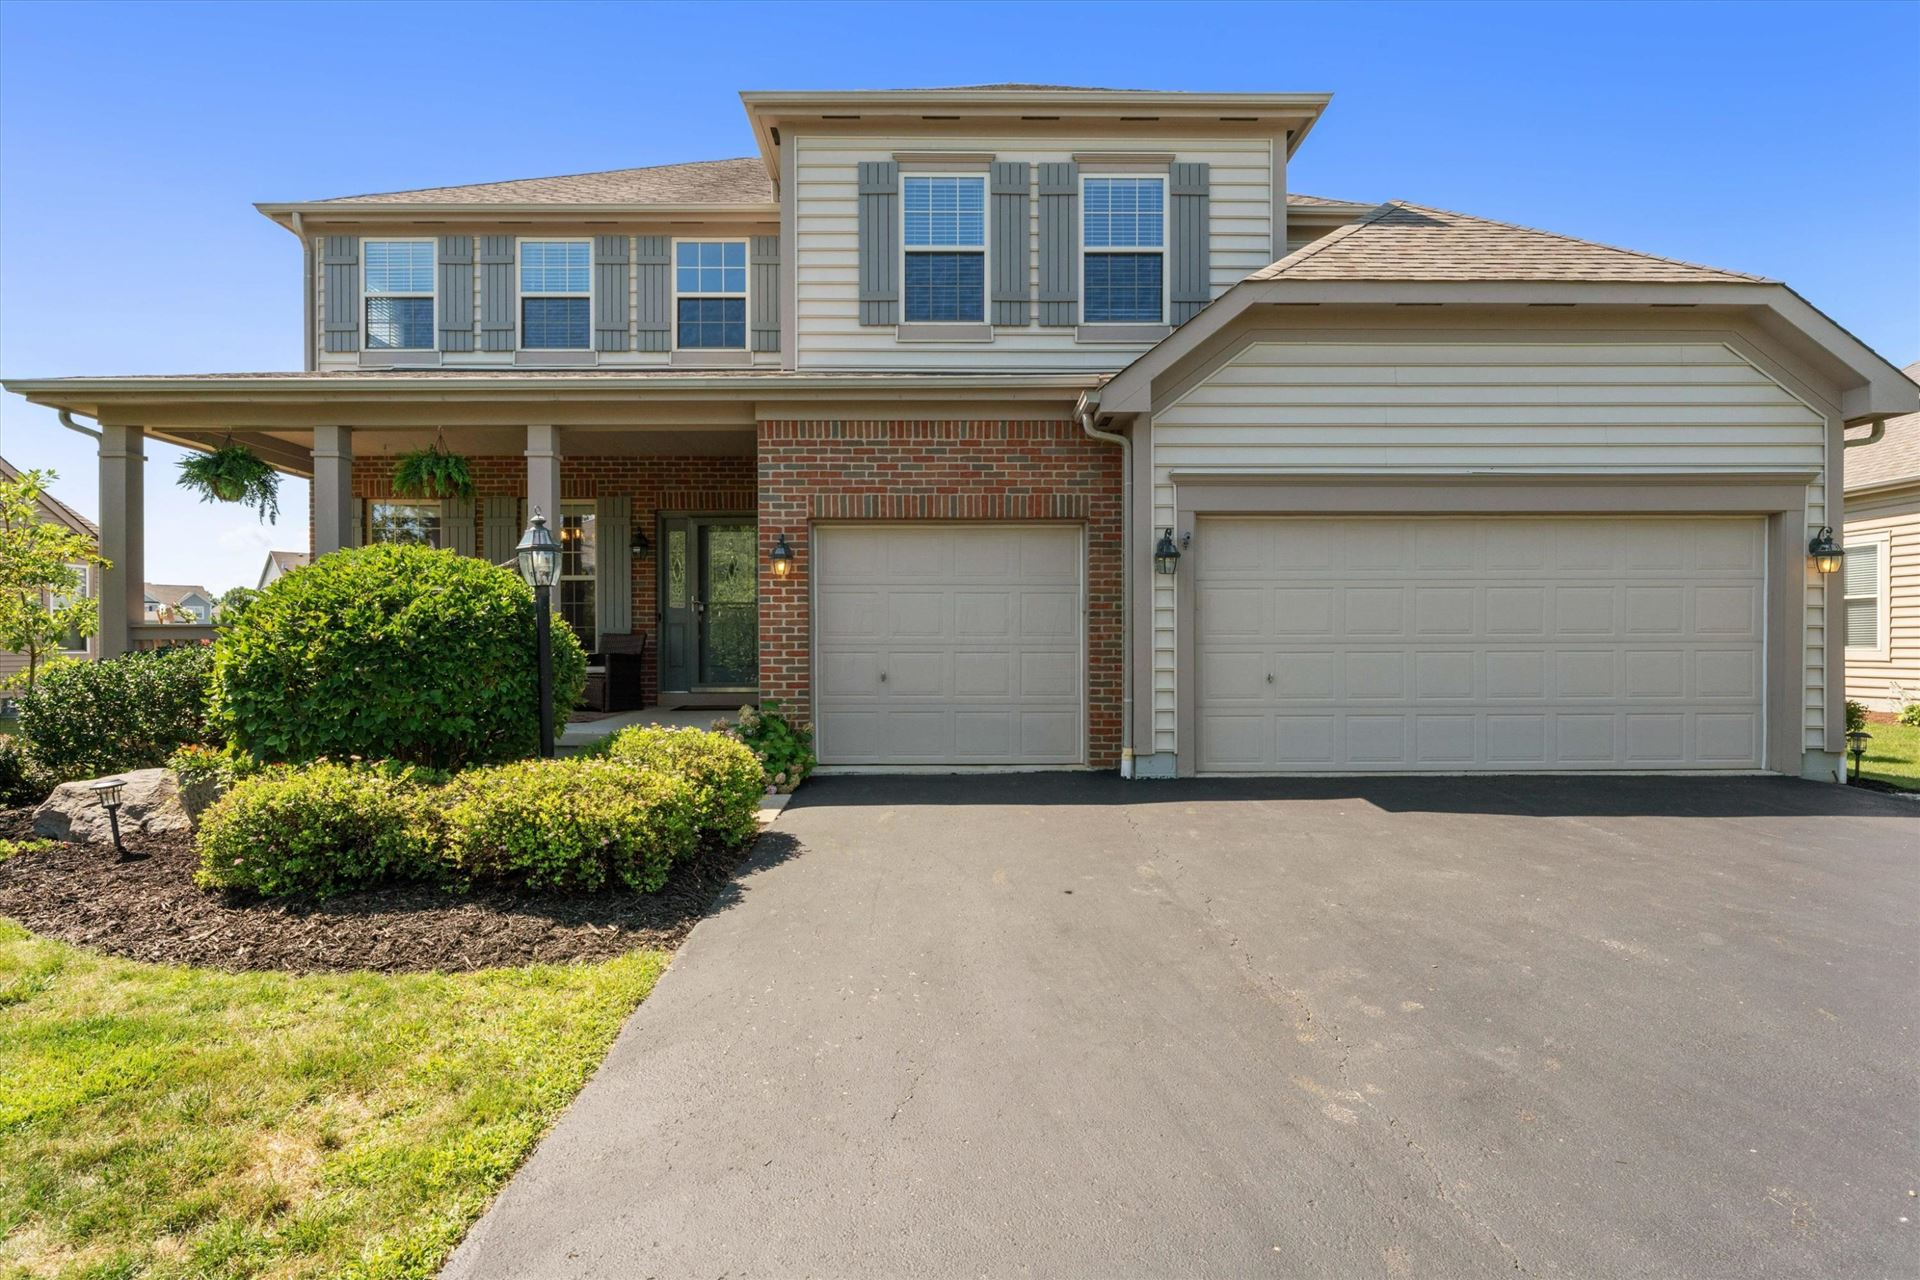 Photo of 6536 Falling Meadows Drive, Galena, OH 43021 (MLS # 221029243)